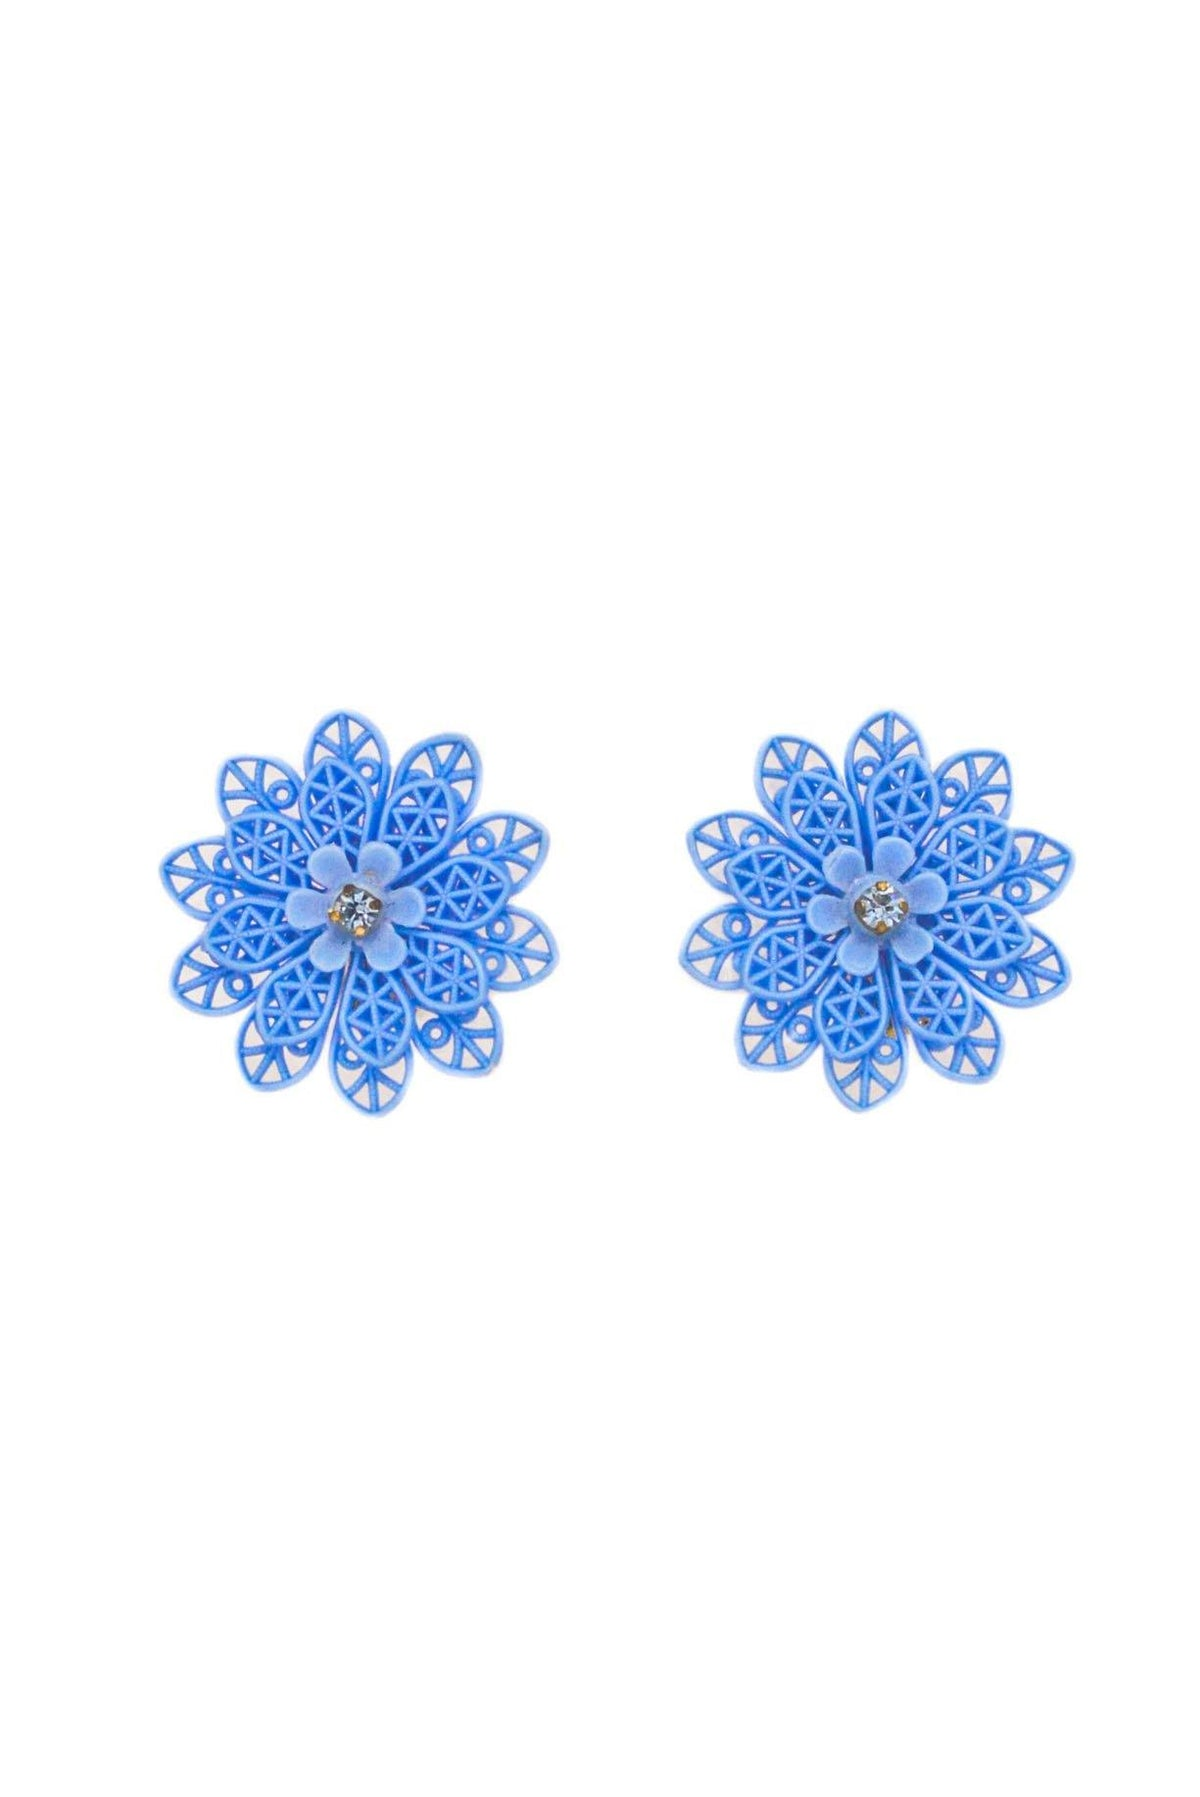 Vintage blue floral statement earrings from Sweet & Spark.